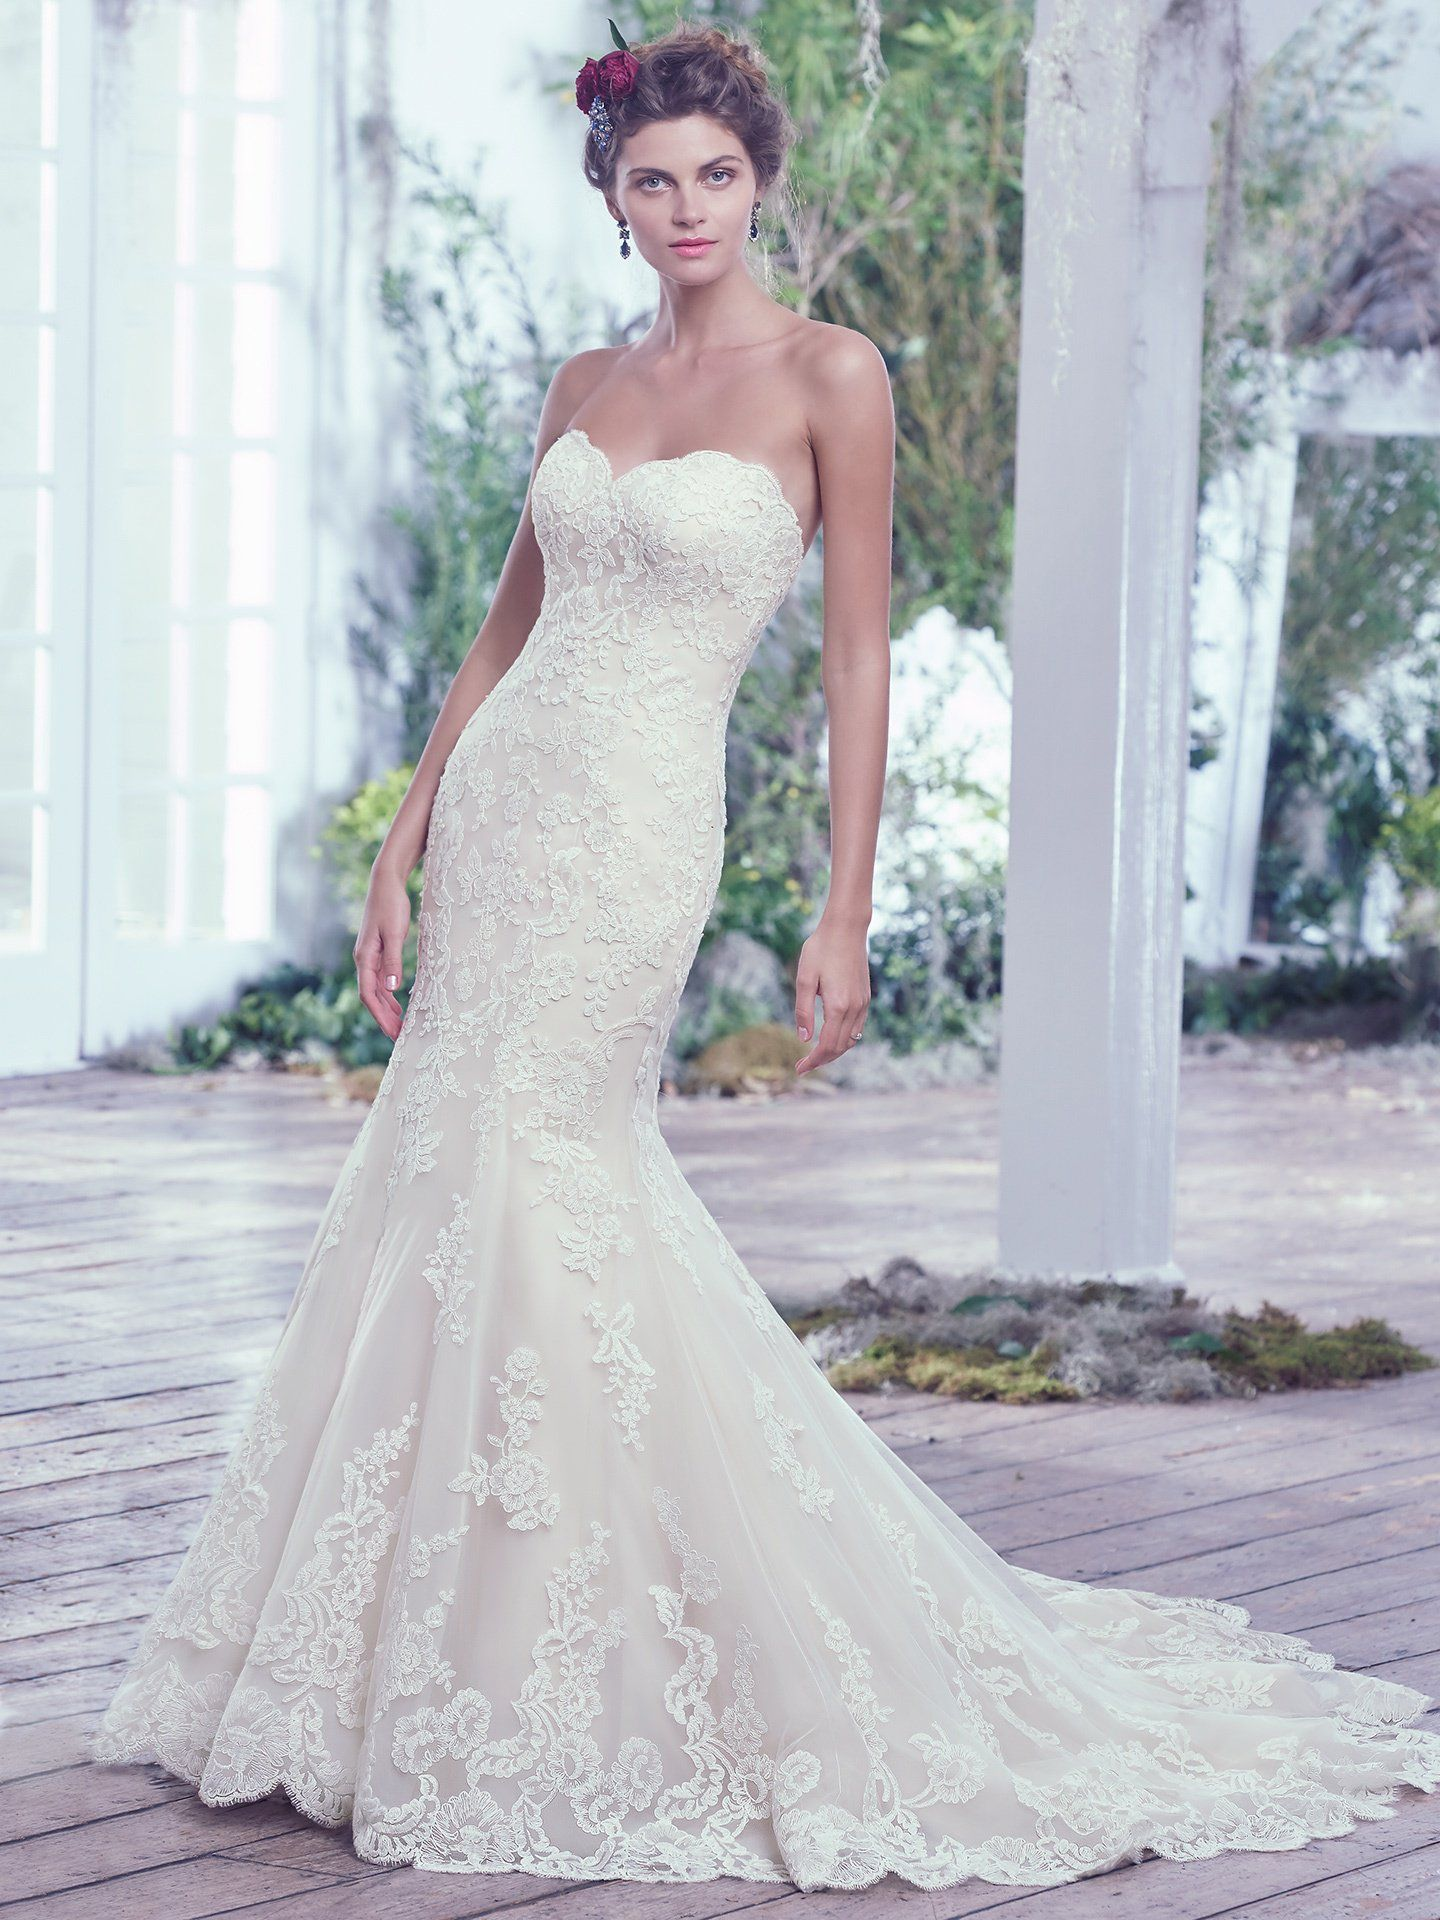 Lace artfully placed atop tulle adds sophistication to this feminine fit  and flare wedding dress. Finished with a soft sweetheart neckline 81c352c30